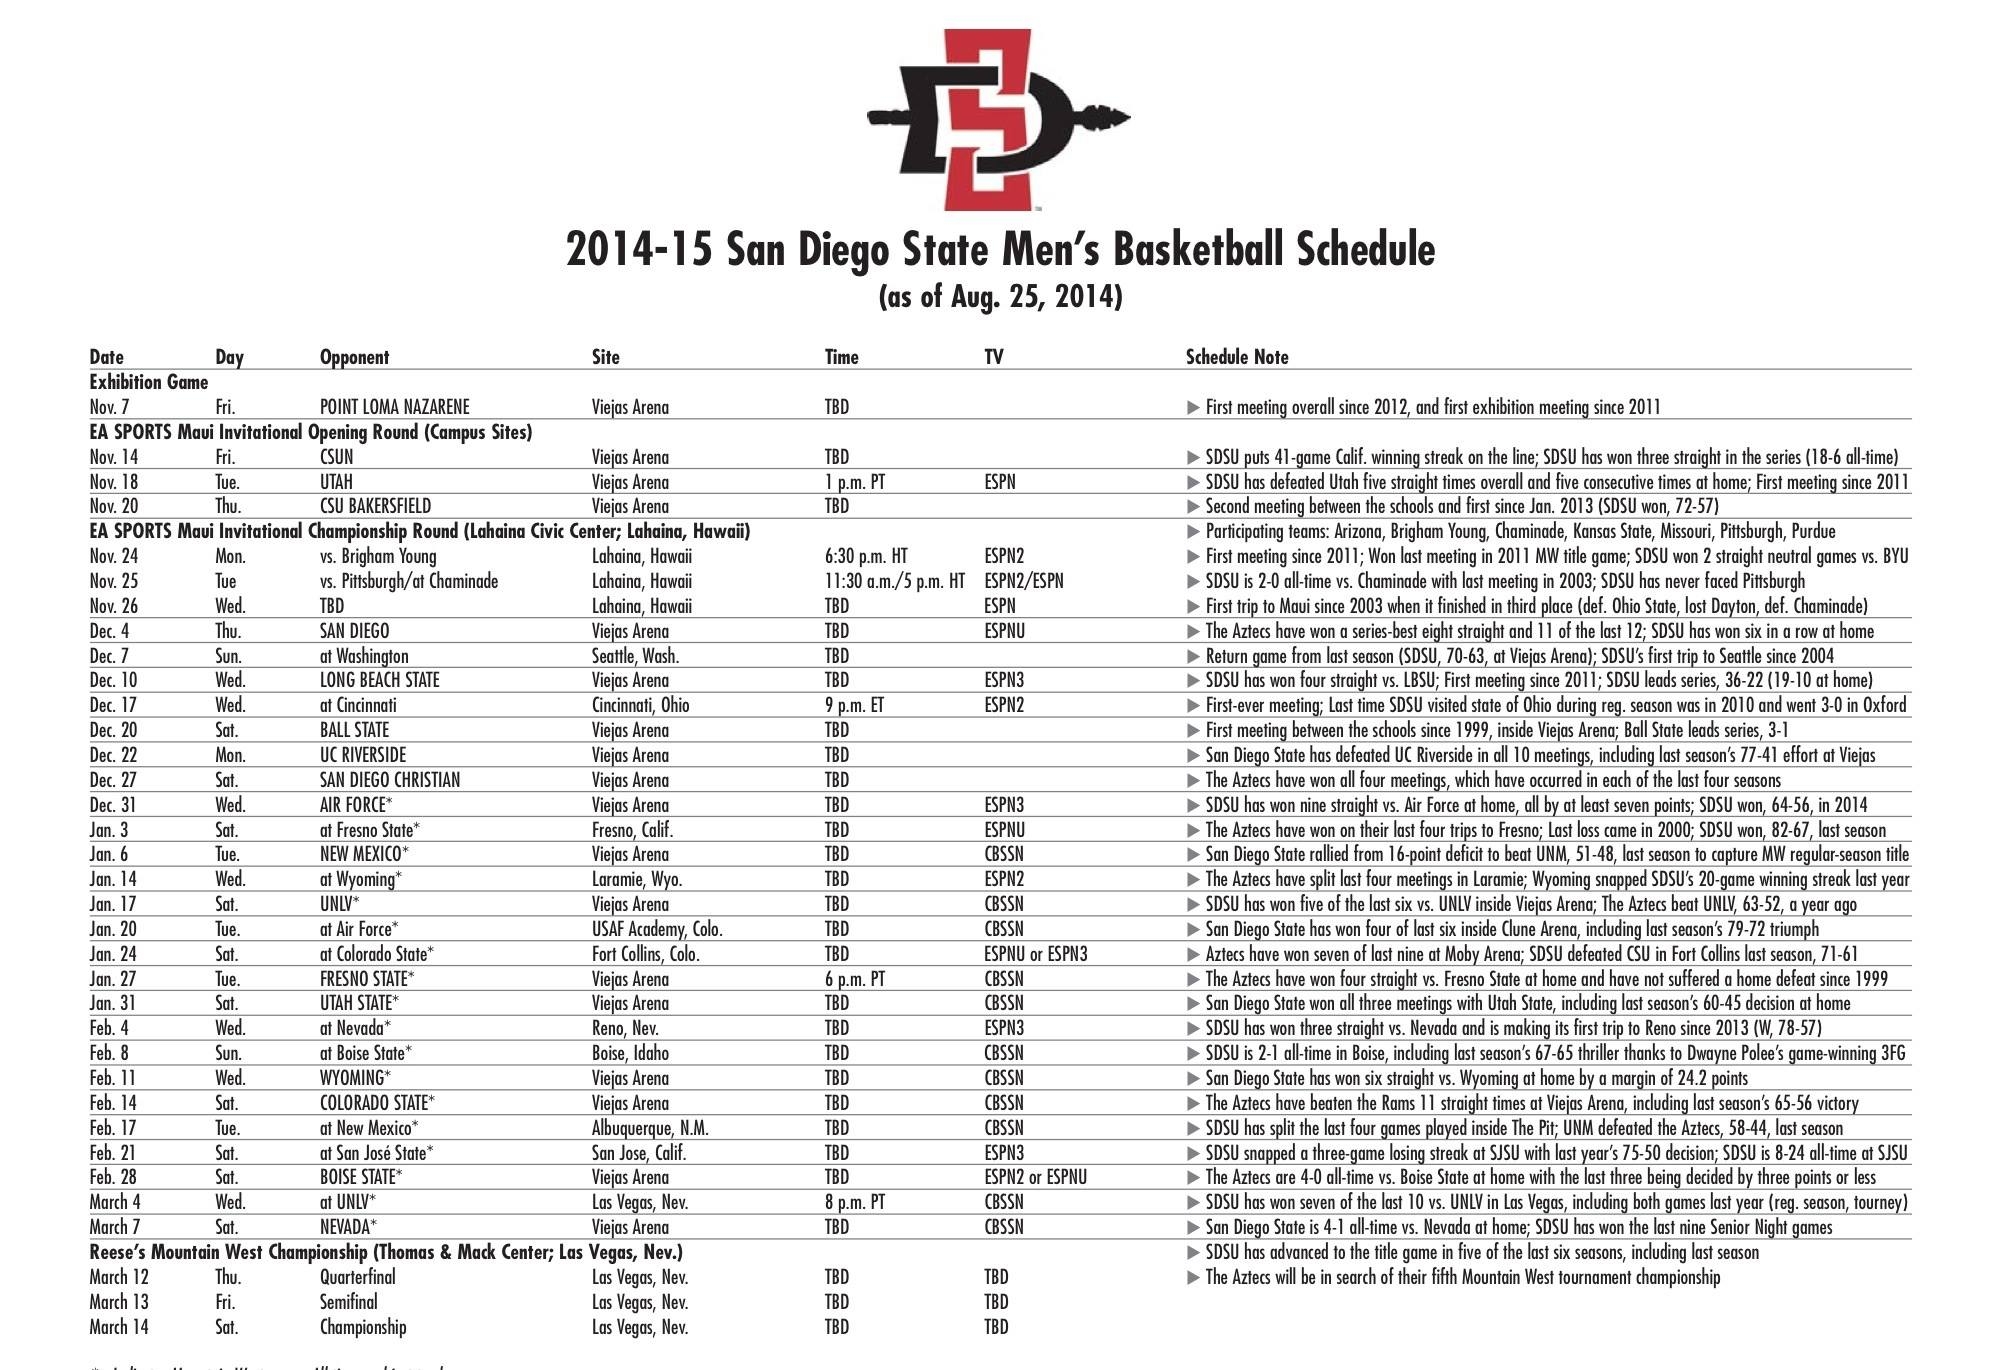 San Diego State Releases 2014/15 Men's Basketball Schedule